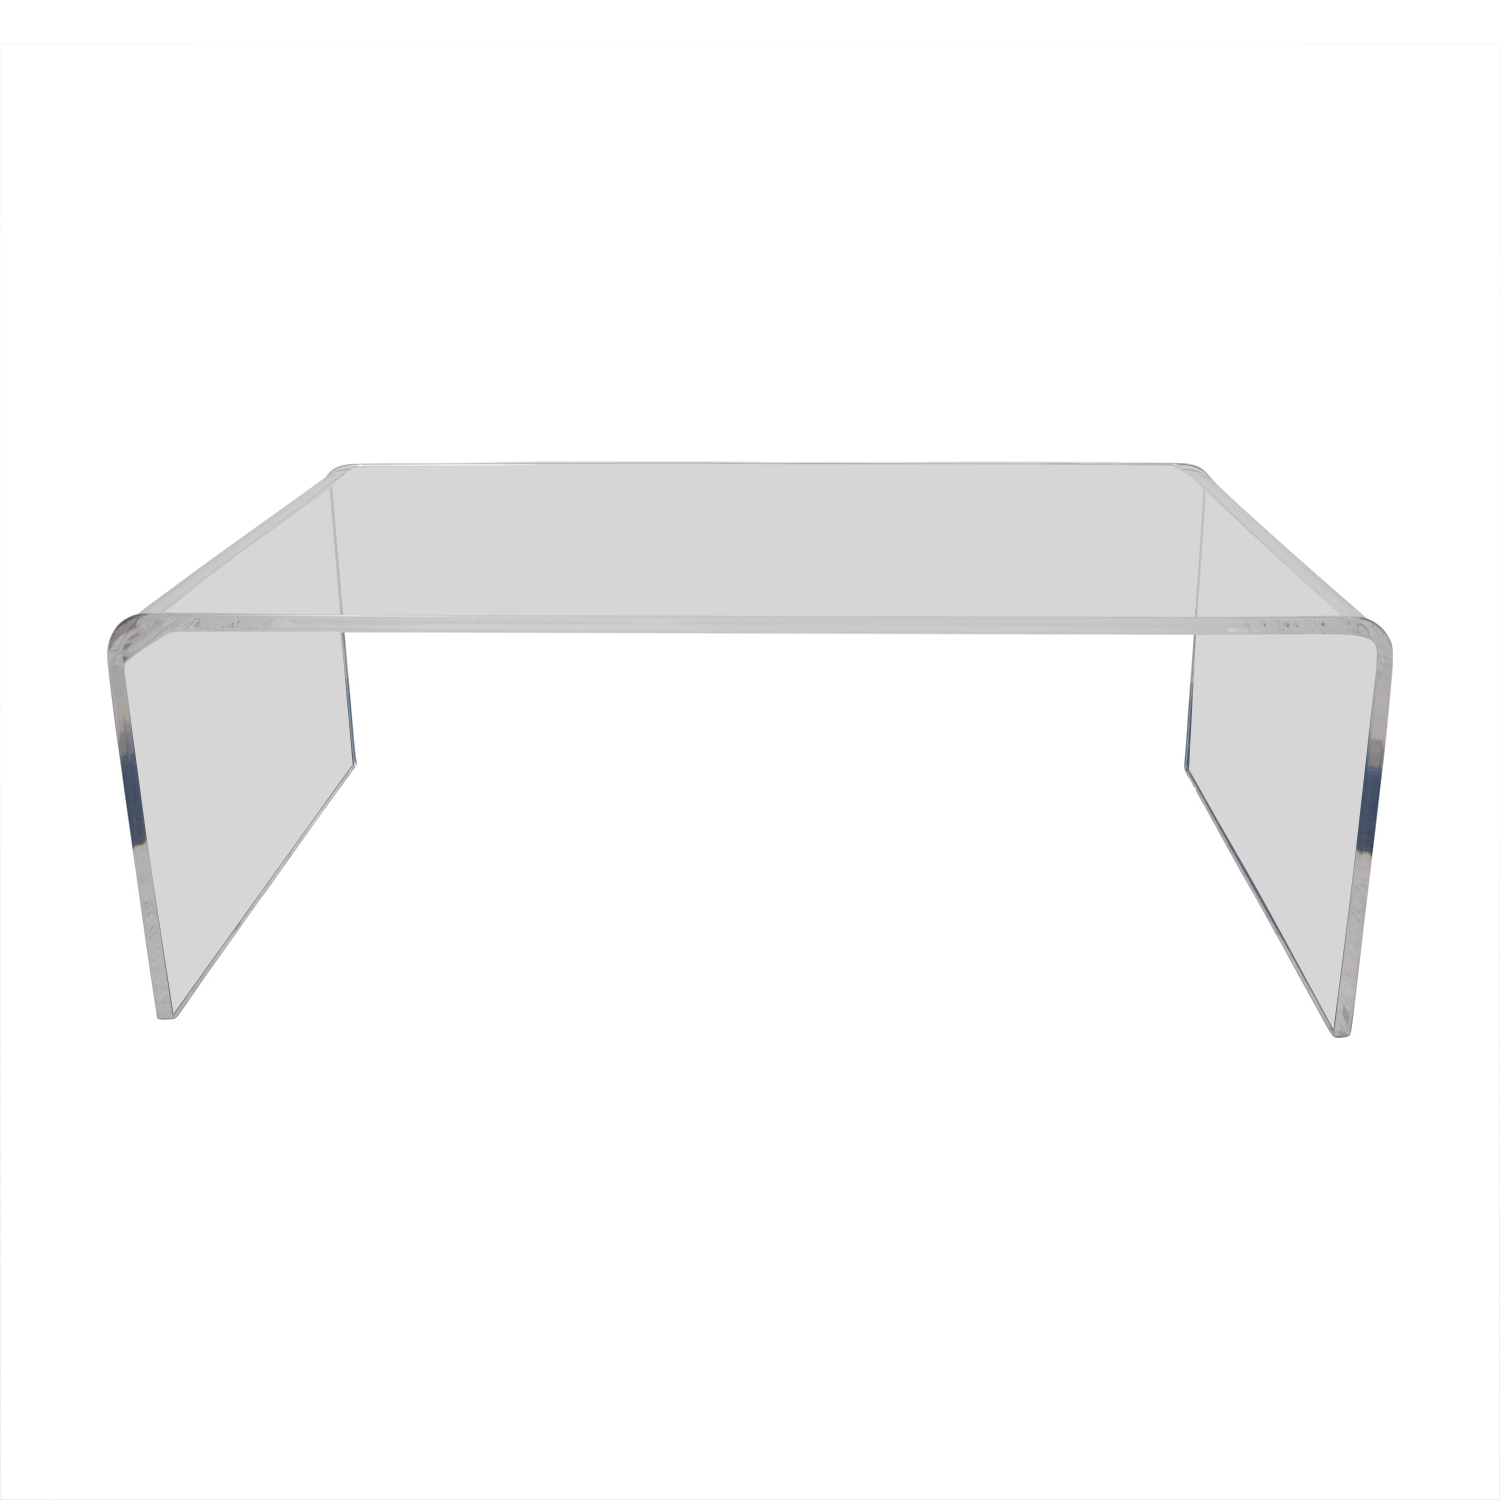 [%90% Off – West Elm West Elm Silver Coffee Table / Tables Intended For Recent Peekaboo Acrylic Tall Coffee Tables|Peekaboo Acrylic Tall Coffee Tables With Regard To Well Known 90% Off – West Elm West Elm Silver Coffee Table / Tables|Favorite Peekaboo Acrylic Tall Coffee Tables With 90% Off – West Elm West Elm Silver Coffee Table / Tables|Current 90% Off – West Elm West Elm Silver Coffee Table / Tables With Peekaboo Acrylic Tall Coffee Tables%] (View 4 of 20)